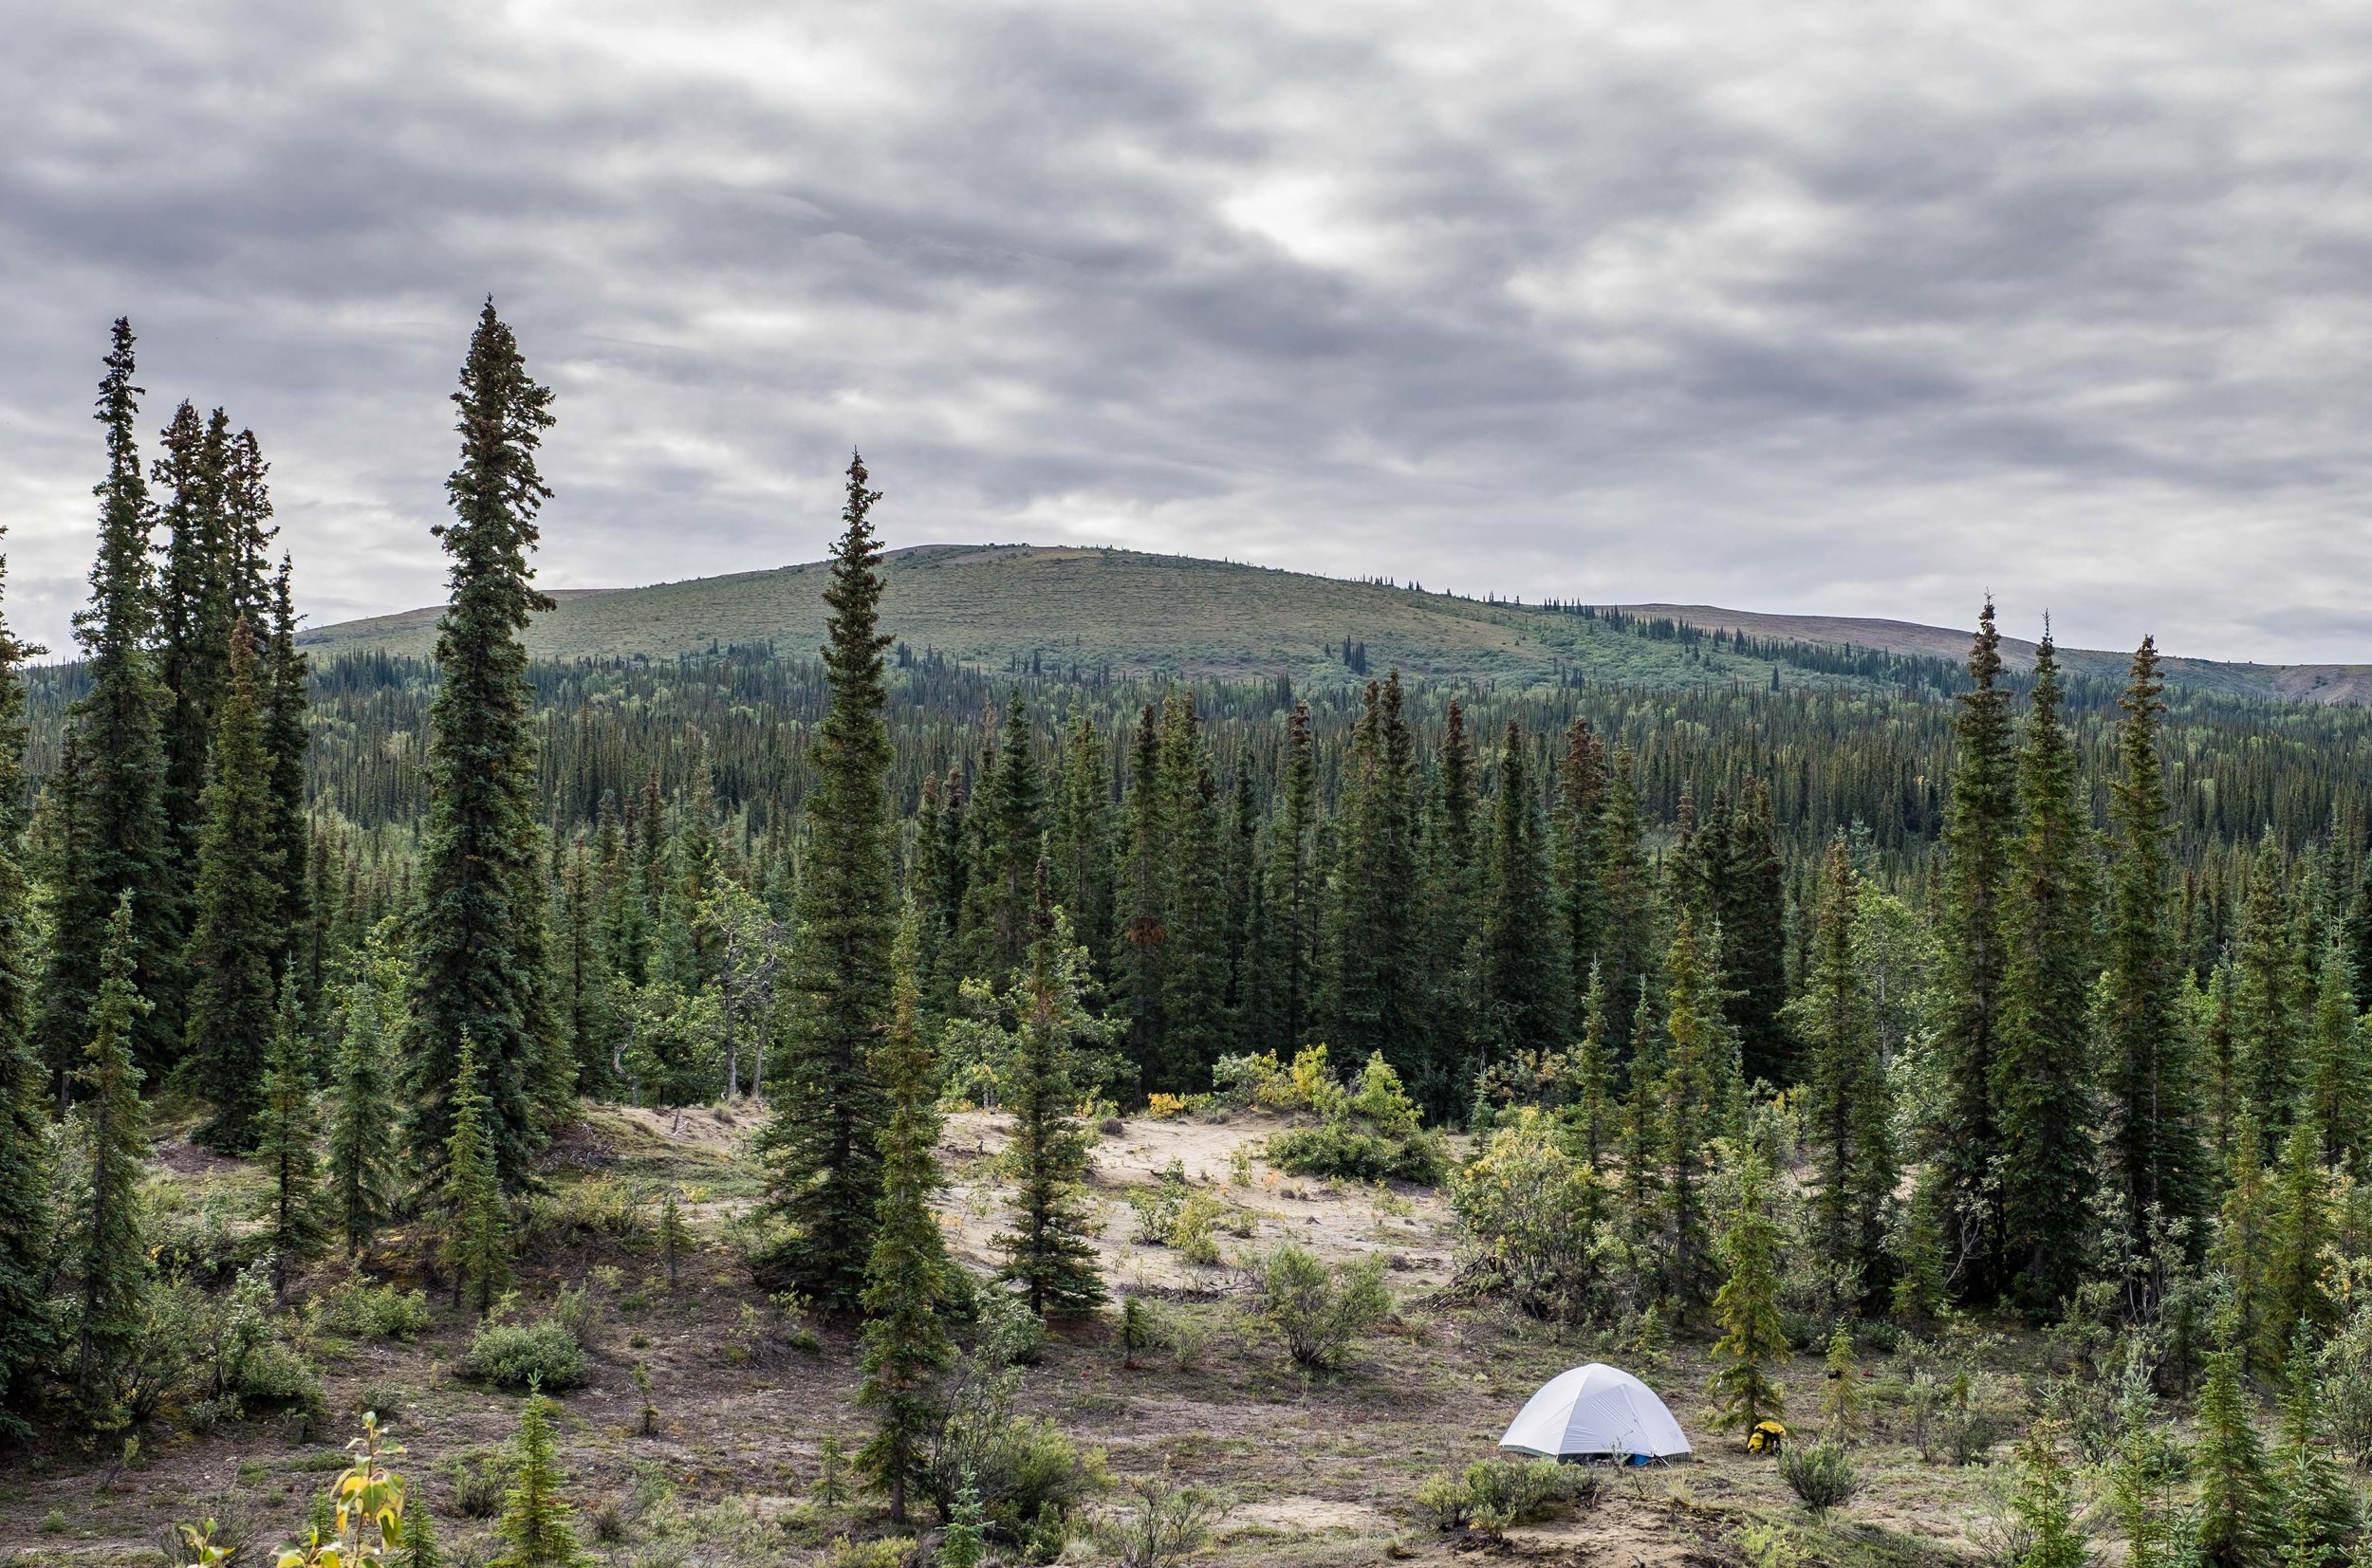 All set up to camp out in the Kobuk wilderness!